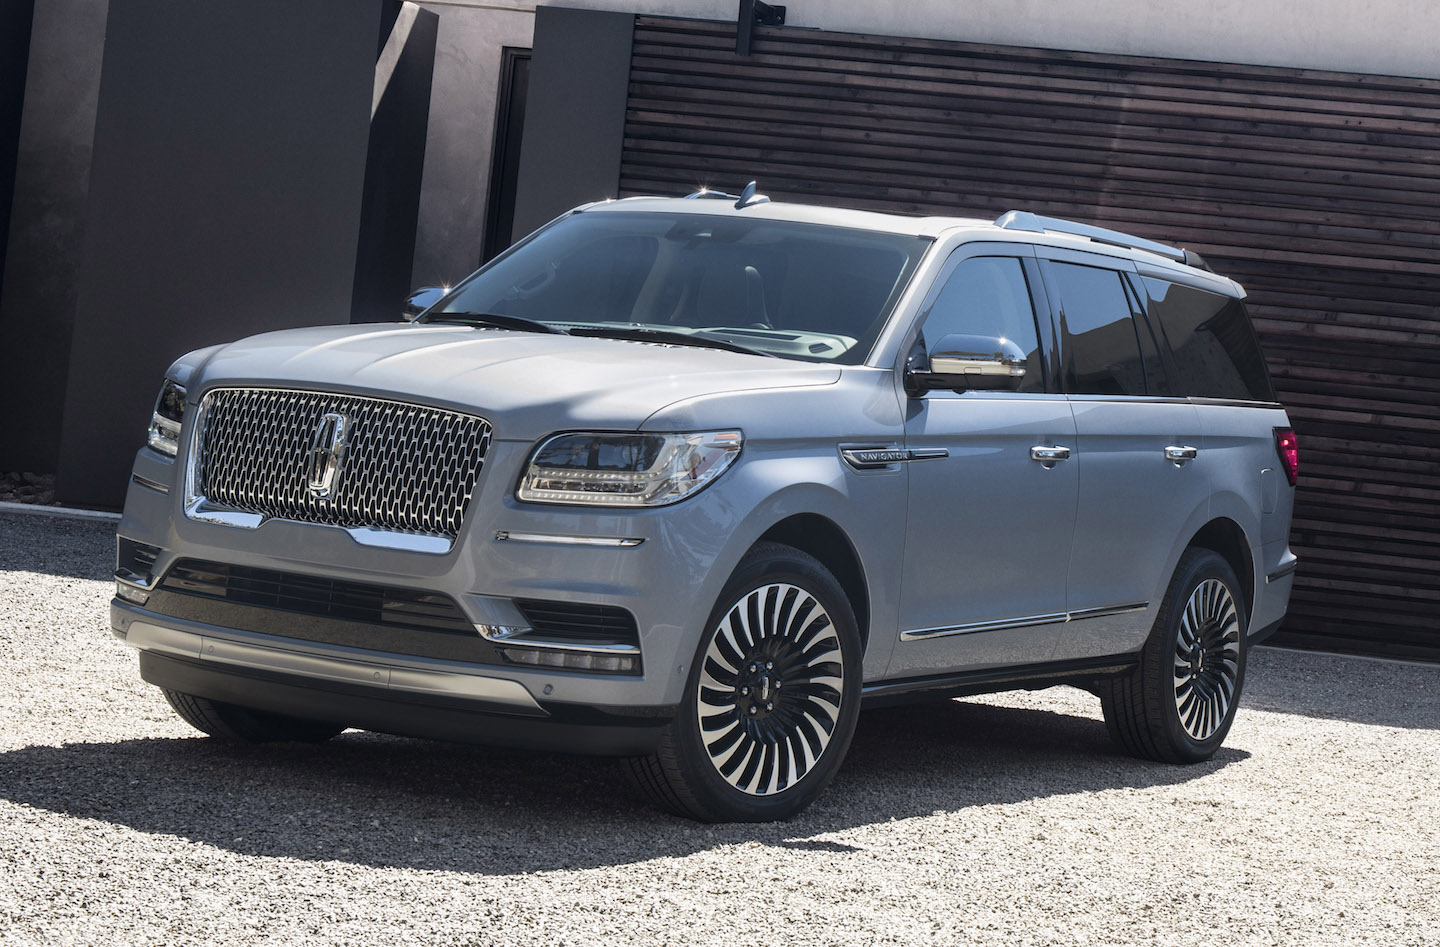 AS SUBTLE AS A TWO-BY-FOUR ACROSS THE FOREHEAD  — the 2018 Lincoln Navigator